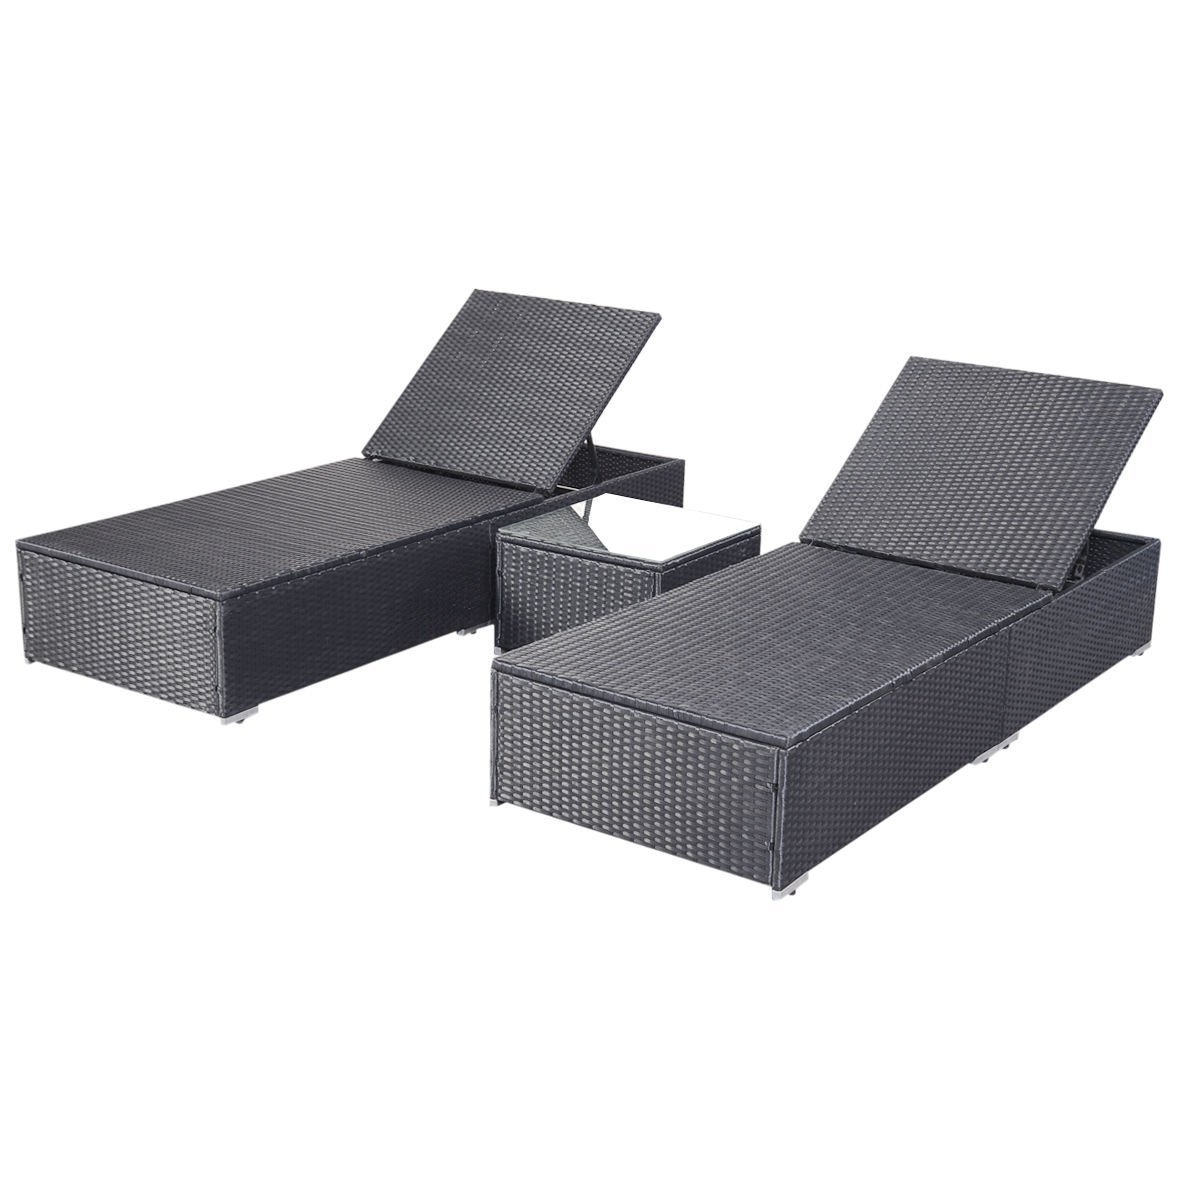 Amazon : Tangkula 3 Pcs Wicker Outdoor Furniture Pool Chaise Regarding Well Liked Black Chaise Lounge Outdoor Chairs (View 12 of 15)